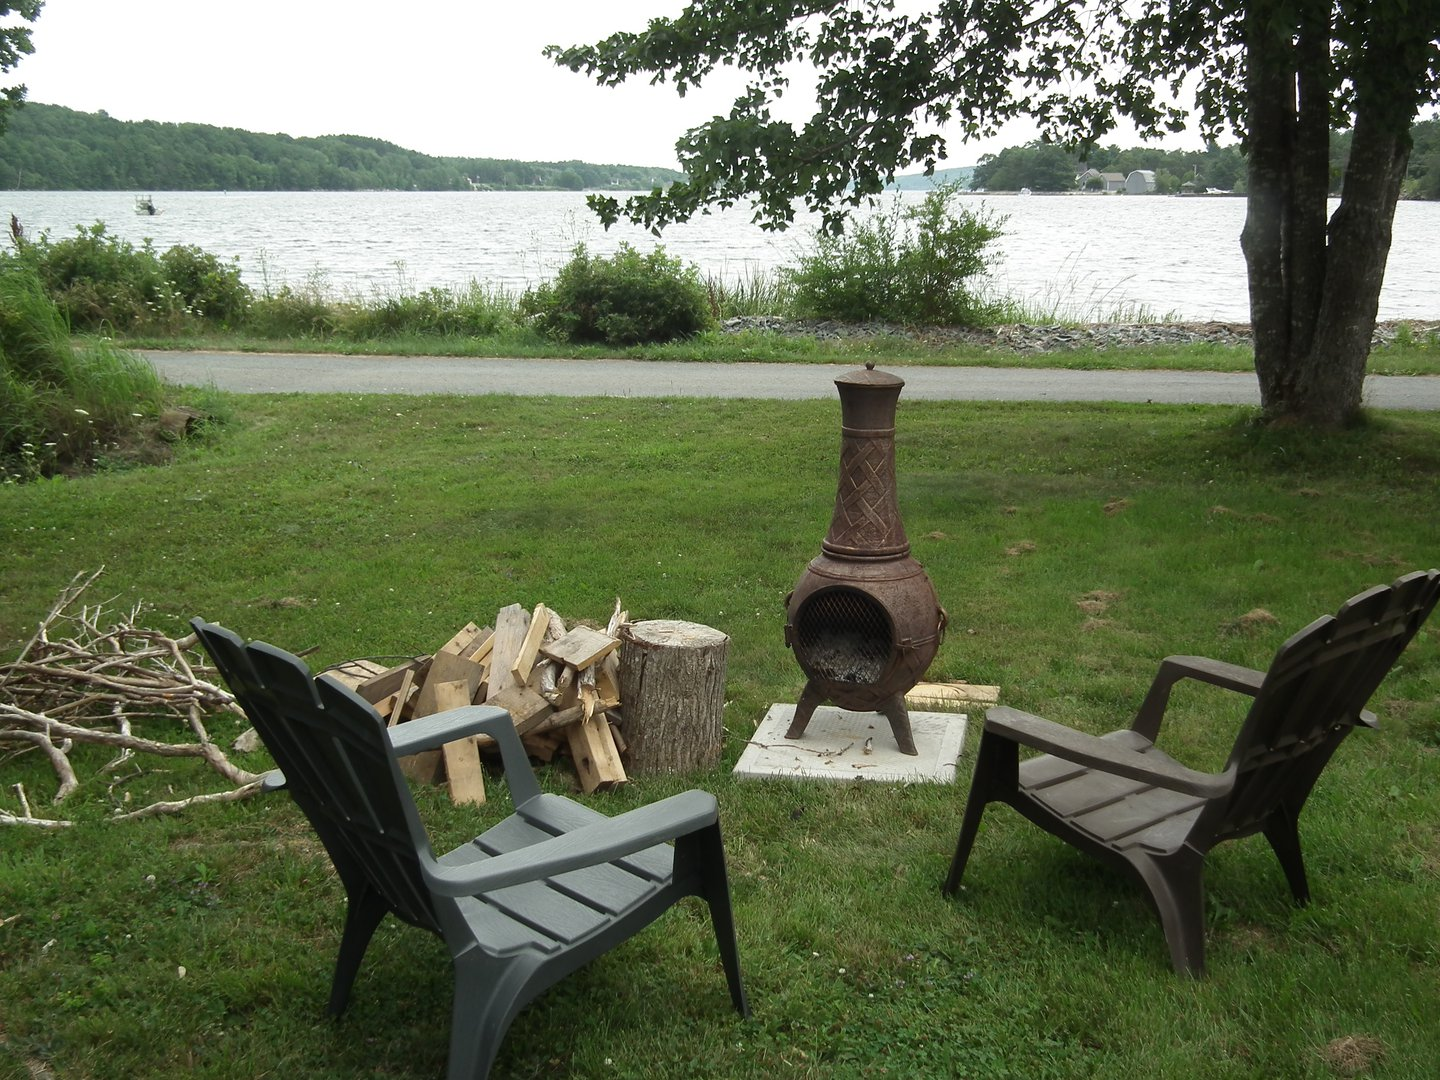 House for rent at 1751 NS-331, Pleasantville, NS. This is the backyard with water view and lawn.